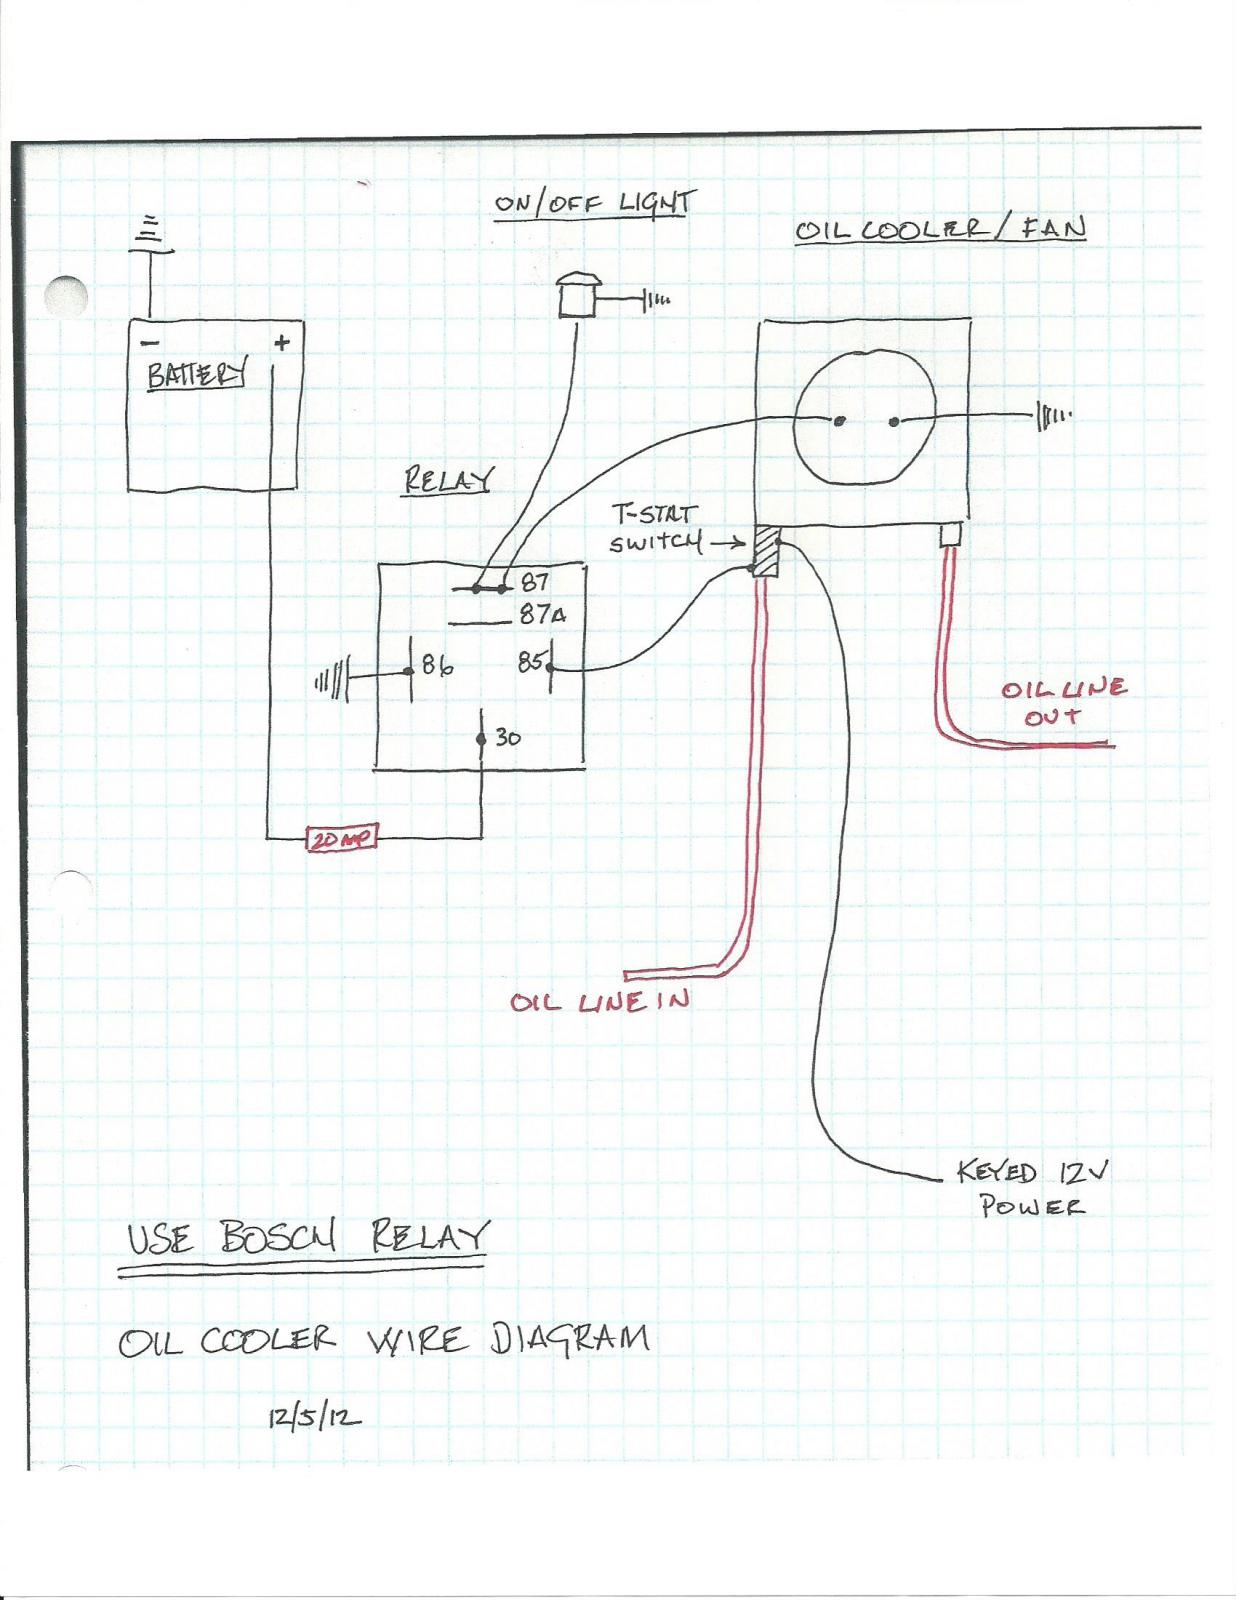 [DIAGRAM_38DE]  TheSamba.com :: Performance/Engines/Transmissions - View topic - Location  of inline Oil Temp Fan Switch | Derale Oil Cooler Wiring Diagram |  | The Samba